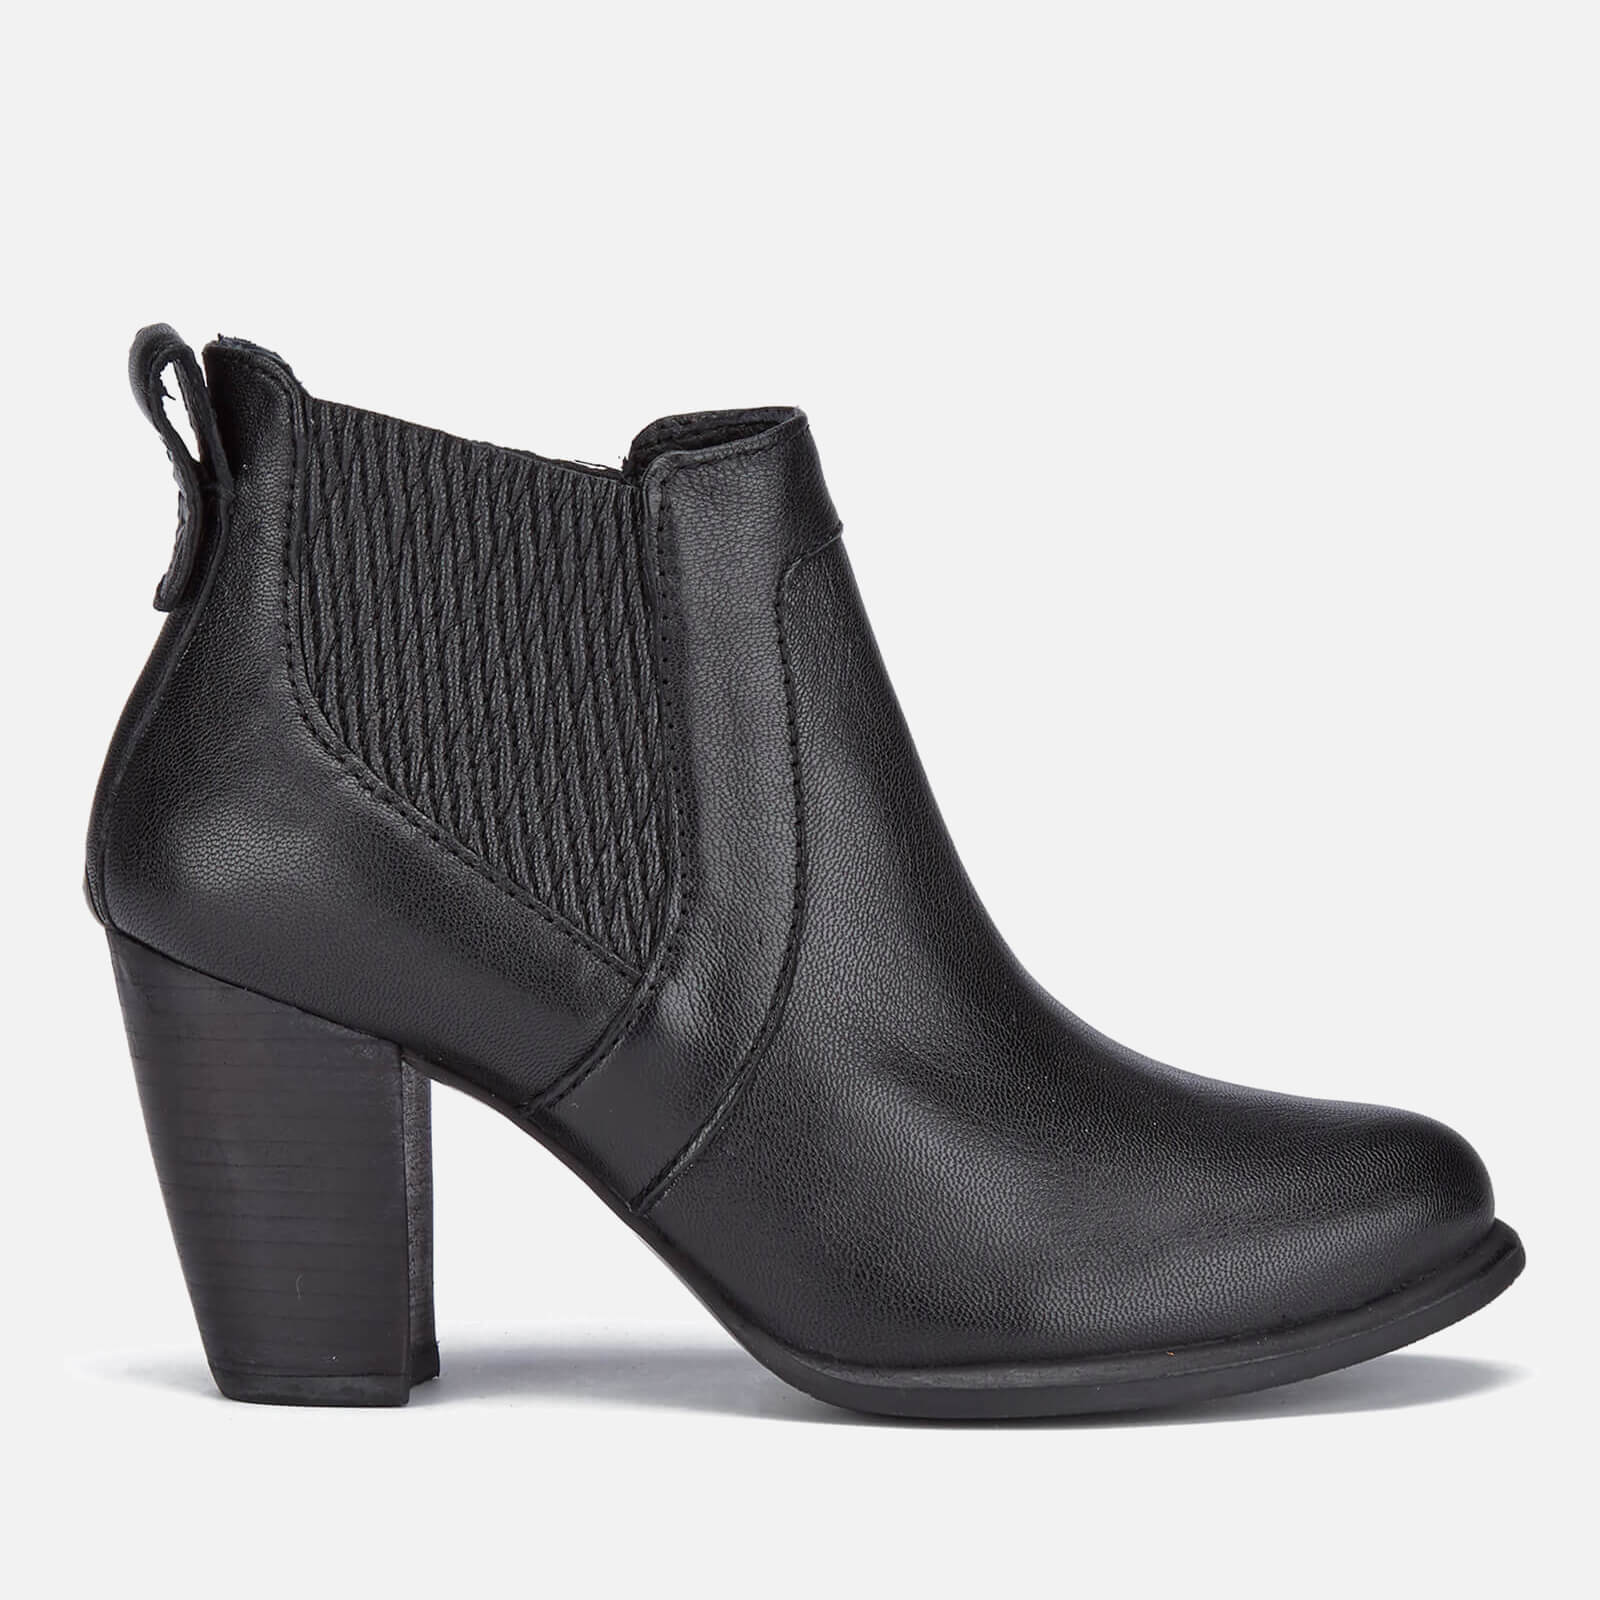 7ee8d4a34a2 UGG Women's Cobie II Leather Heeled Ankle Boots - Black